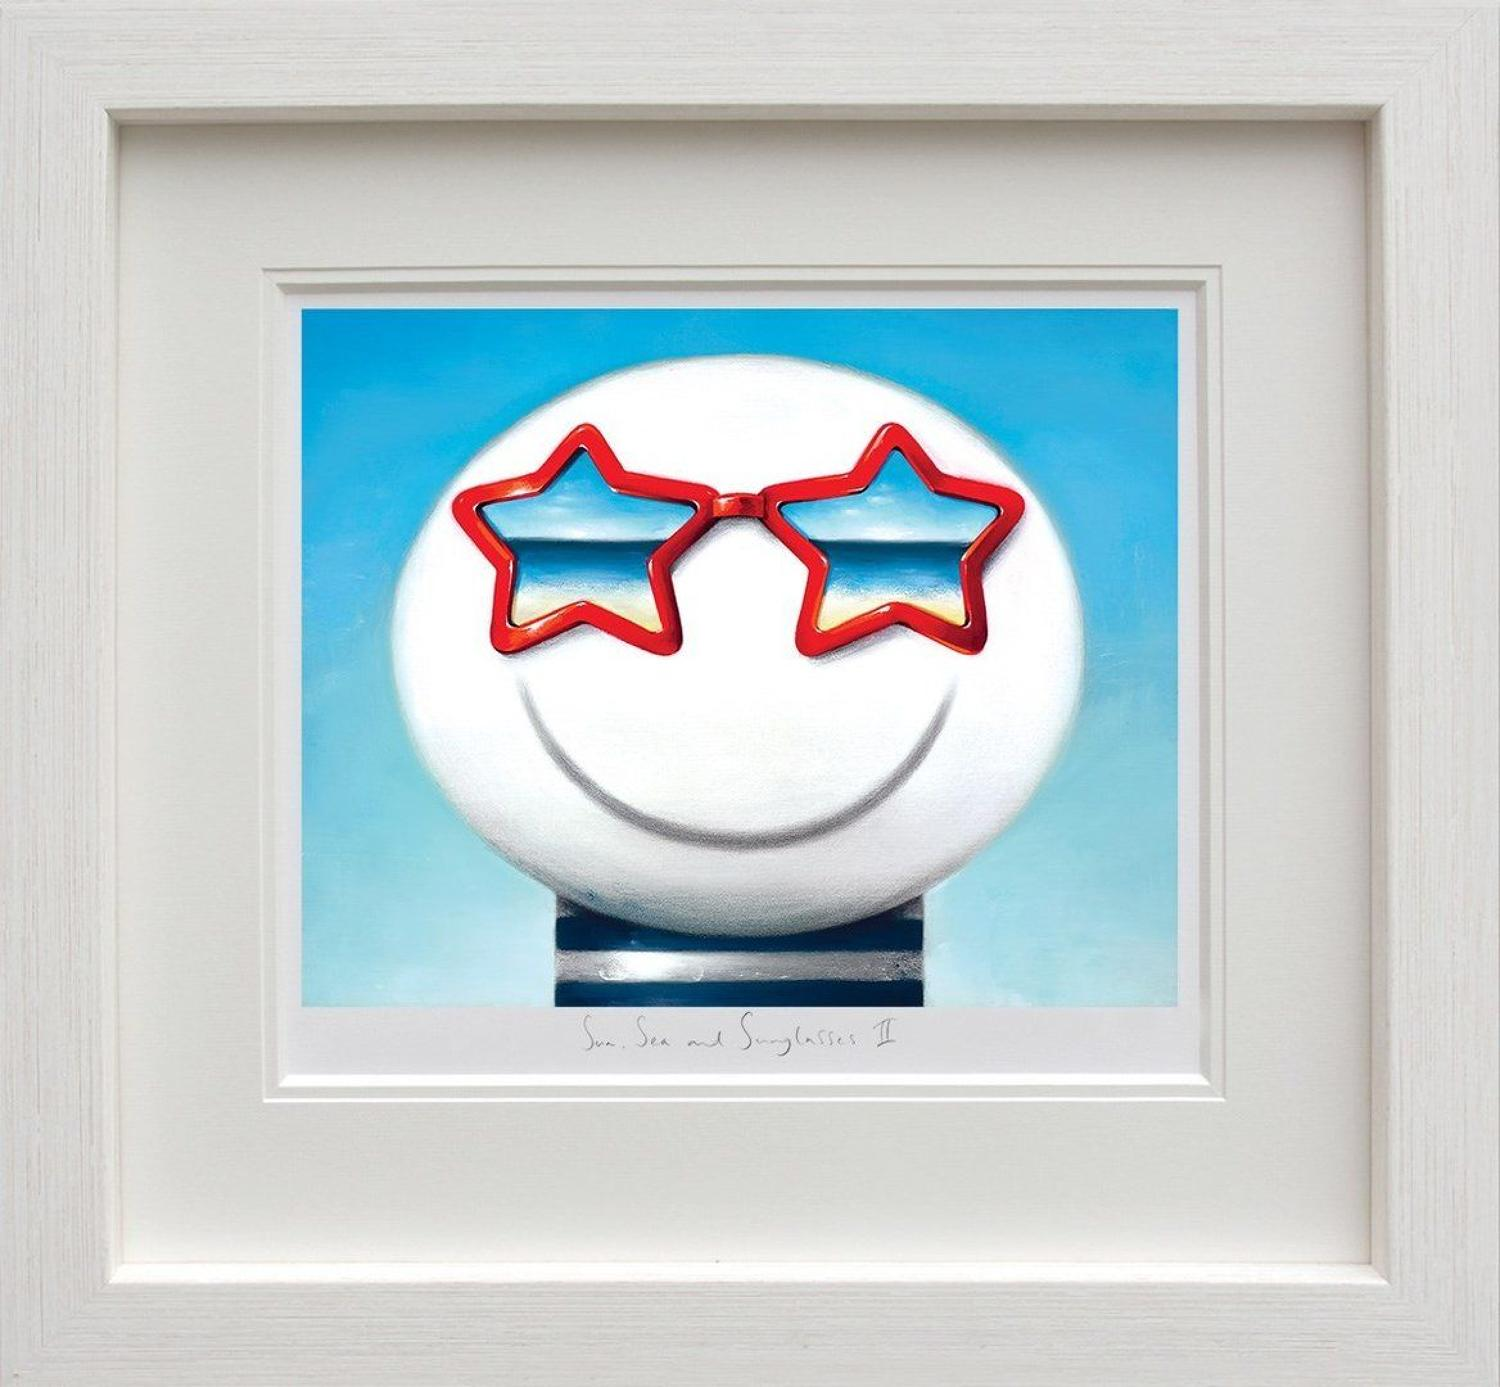 Sun Sea And Sunglasses II by Doug Hyde Framed Art Print